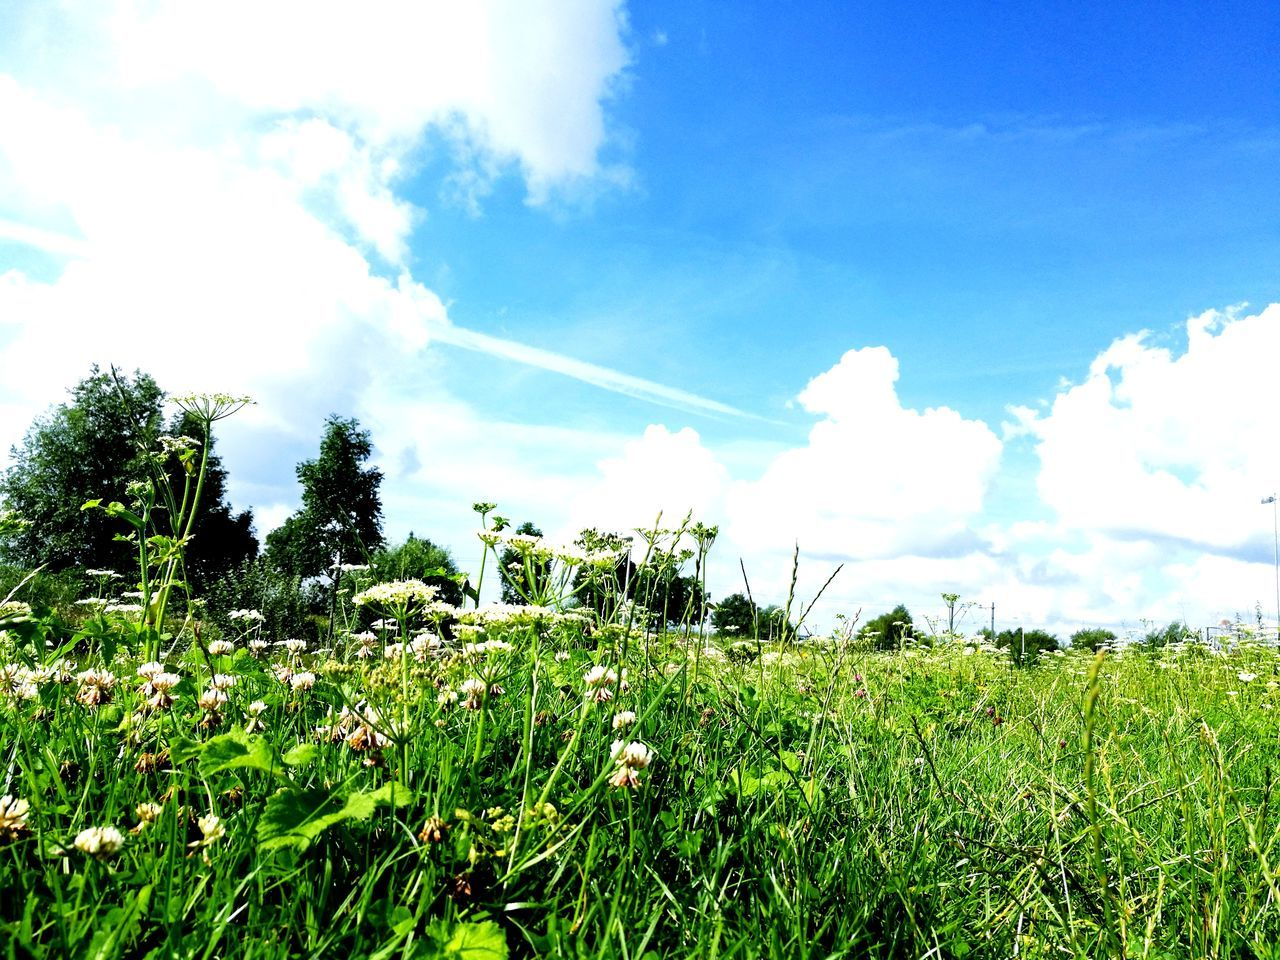 growth, field, nature, grass, sky, beauty in nature, tranquil scene, scenics, tranquility, green color, no people, cloud - sky, plant, day, landscape, outdoors, agriculture, rural scene, tree, freshness